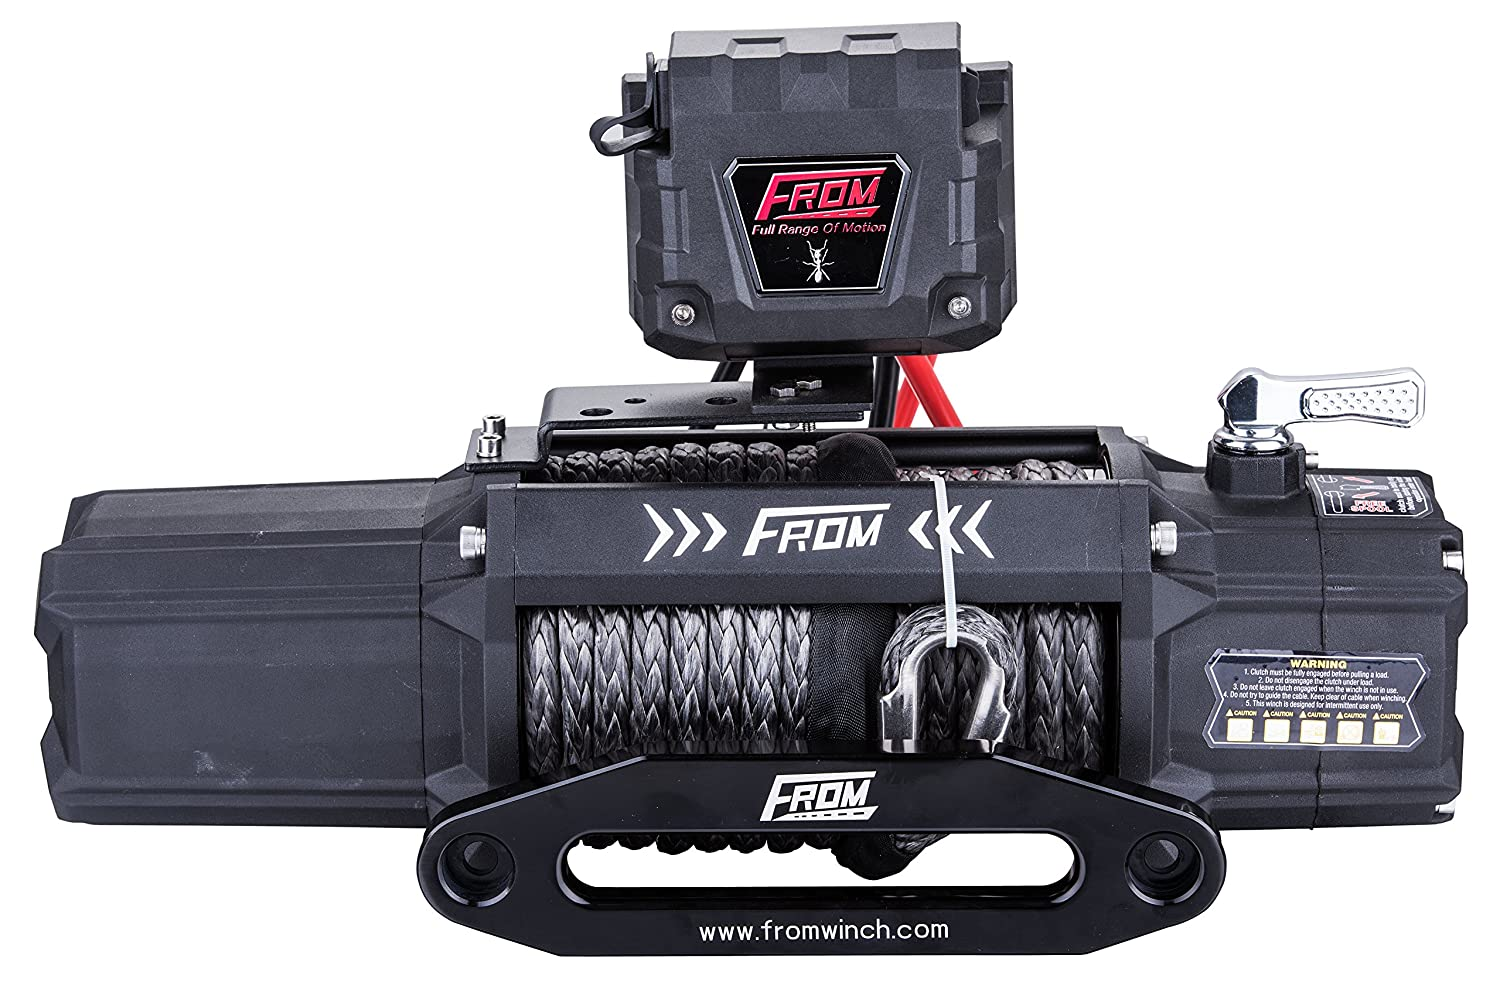 Amazon.com: FROM ANT Series Electric Winch 12500lbs 6.0HP 12V Offroad Winch for ATV/UTV/Jeep with Synthetic Rope FA12.5S: Automotive